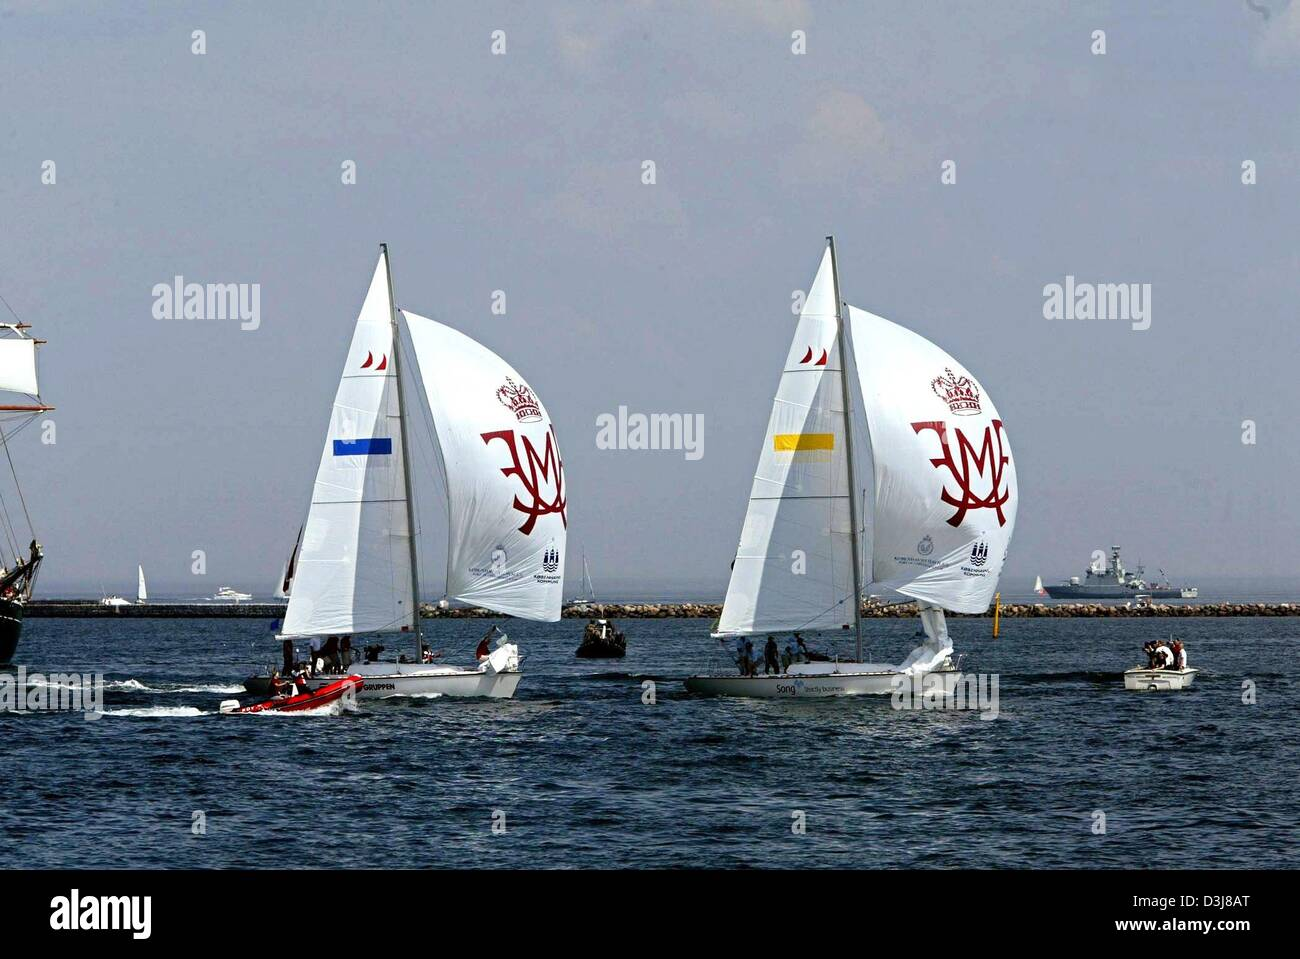 dpa-the-sailing-boats-of-crown-prince-frederik-of-denmark-and-his-D3J8AT.jpg